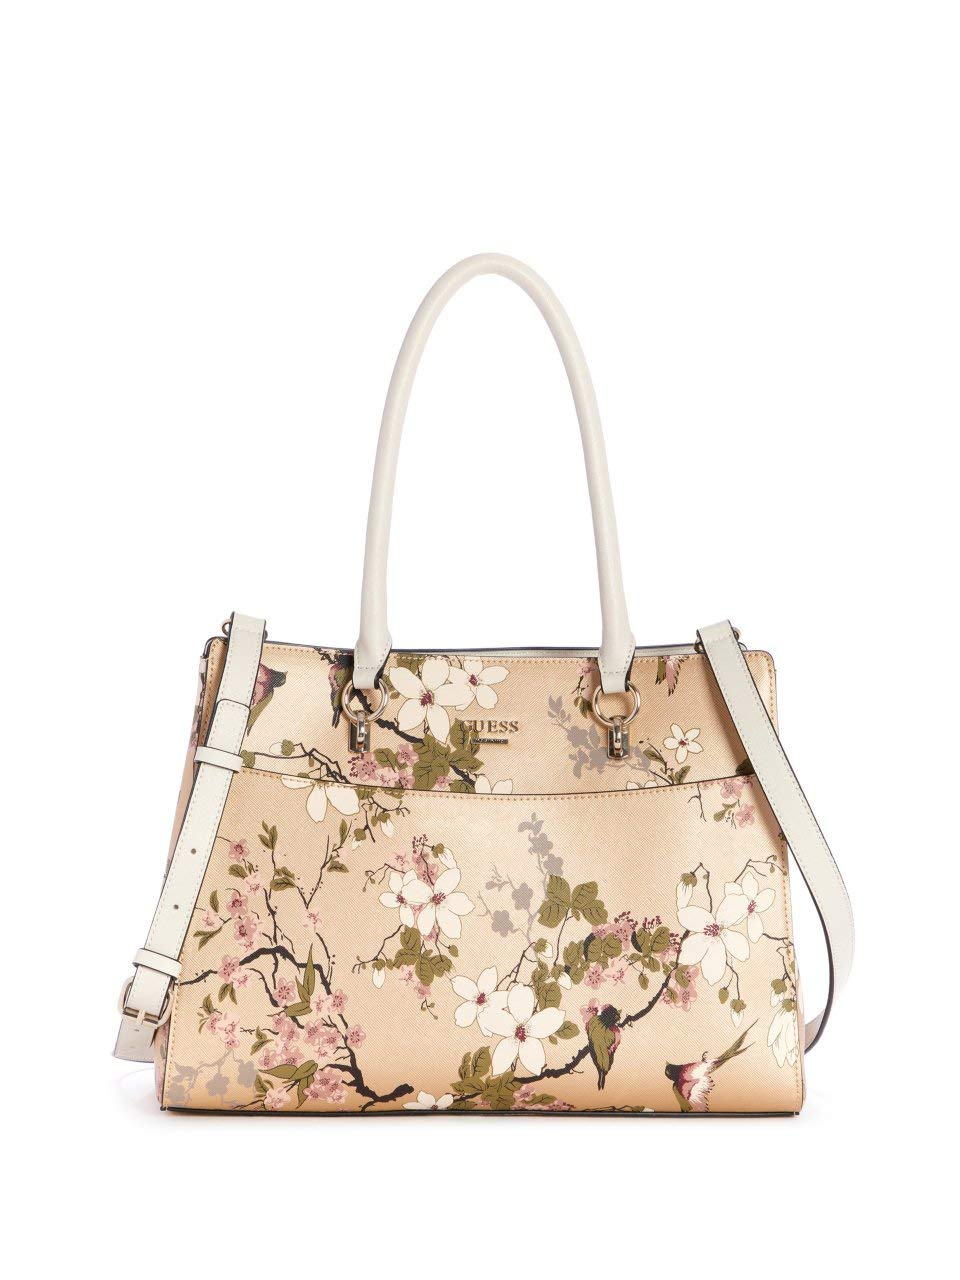 GUESS Factory Women's Natti Floral Satchel